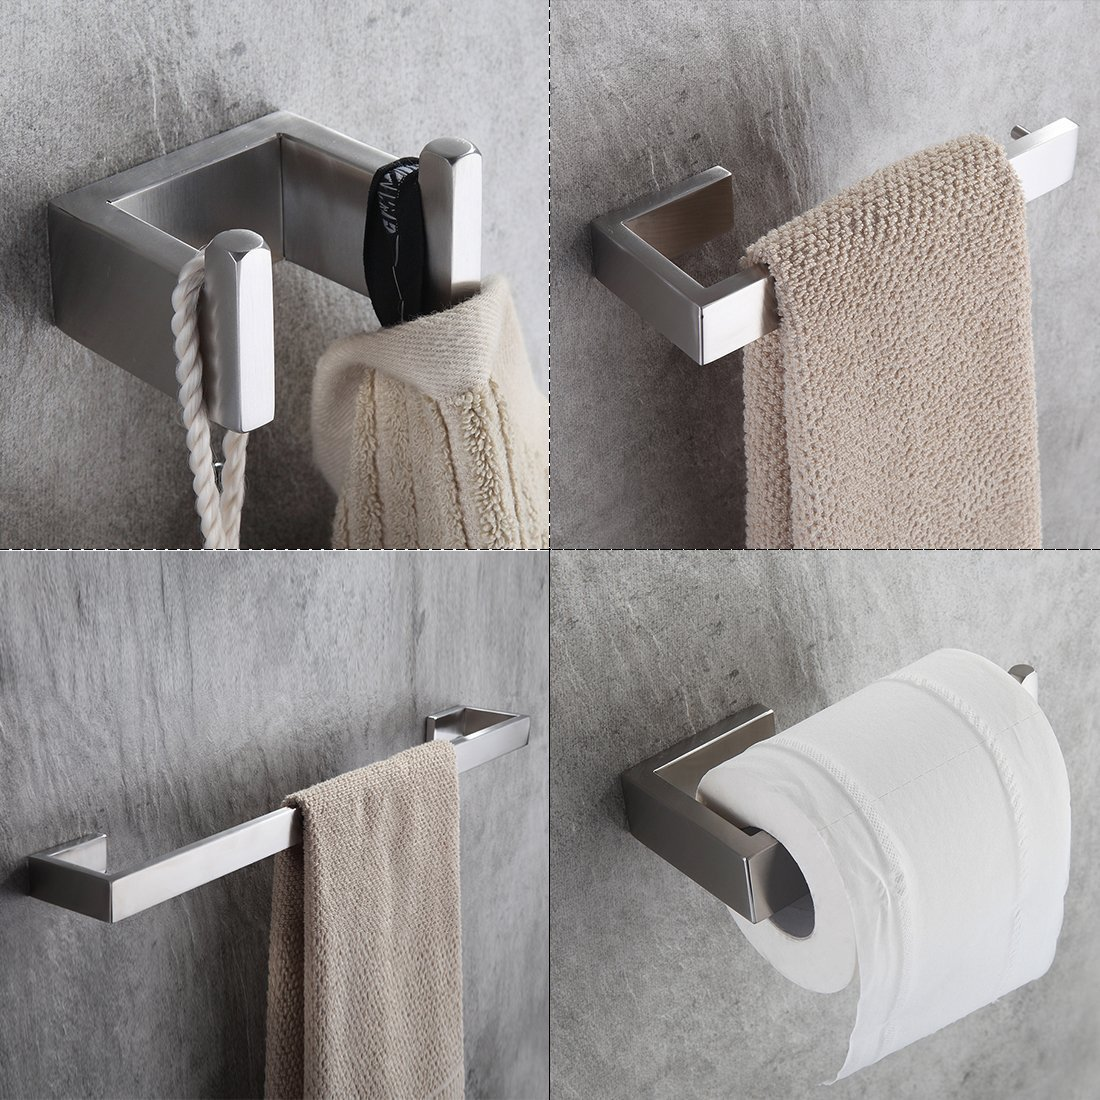 4 Piece/set Bath Hardware Sets 304 Stainless Steel Bathroom Accessories Set Single Towel Bar, Robe Hook, Paper Holder FLG90012SS leyden towel bar towel ring robe hook toilet paper holder wall mounted bath hardware sets stainless steel bathroom accessories